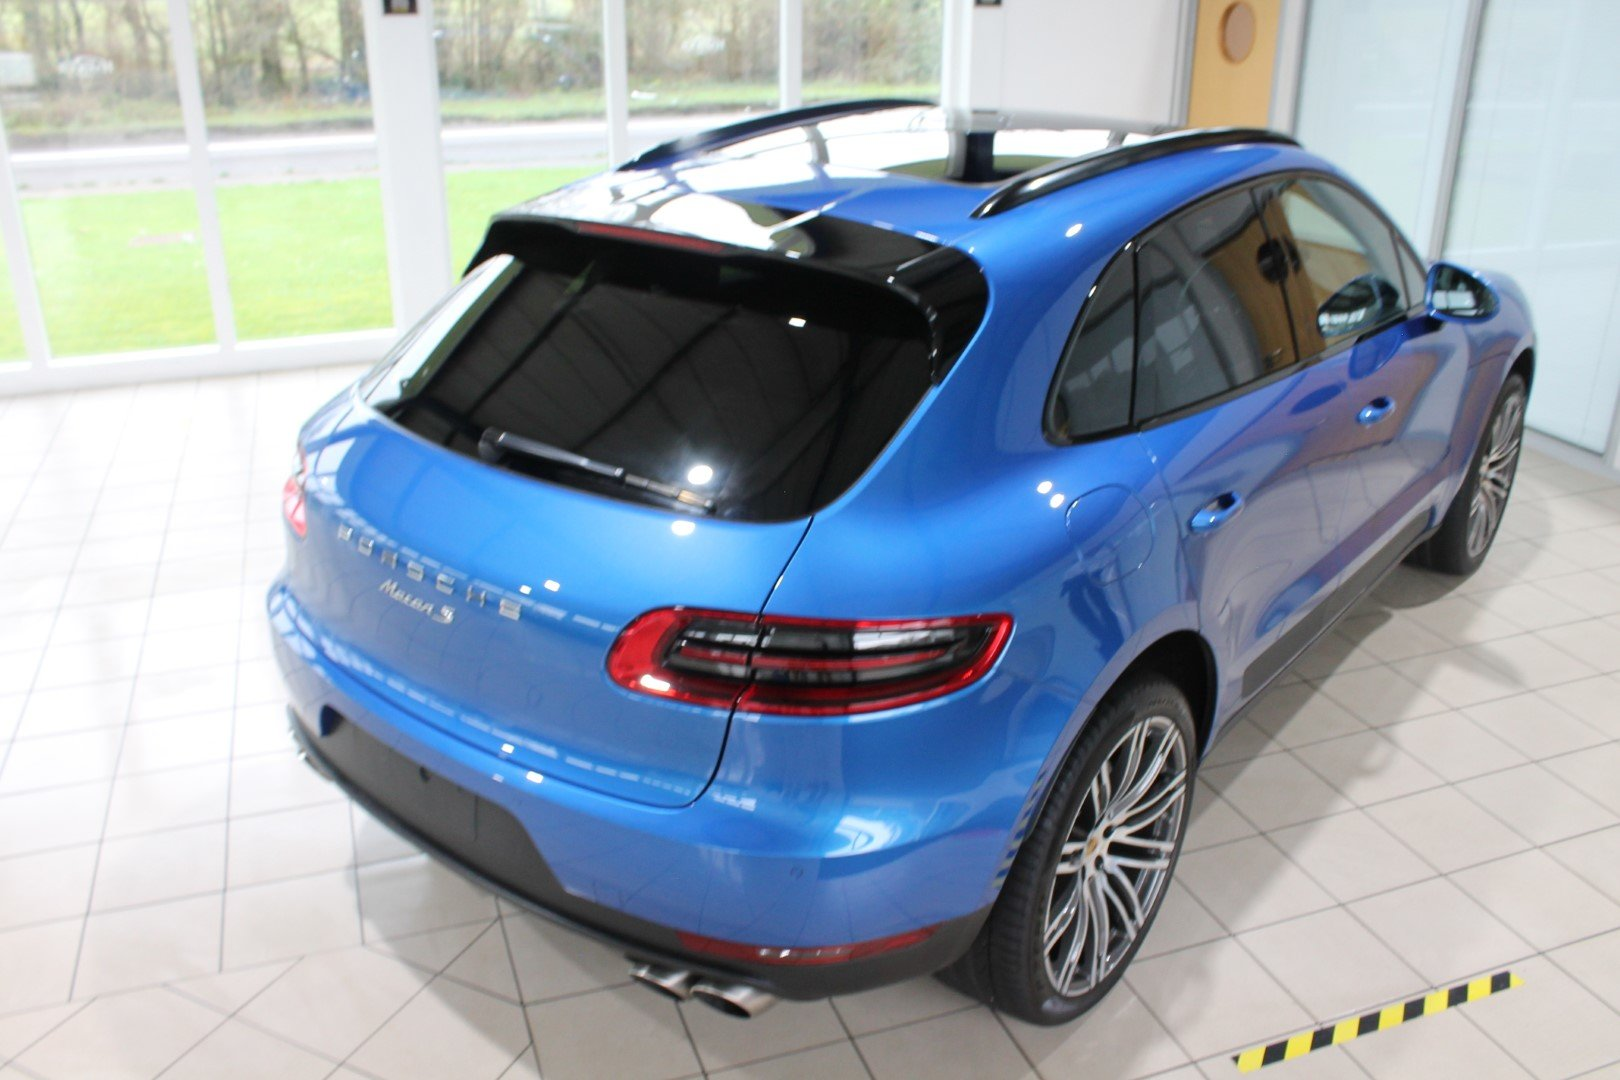 2016 Porsche Macan 3.0 S - NOW SOLD - MORE REQUIRED For Sale (picture 5 of 12)